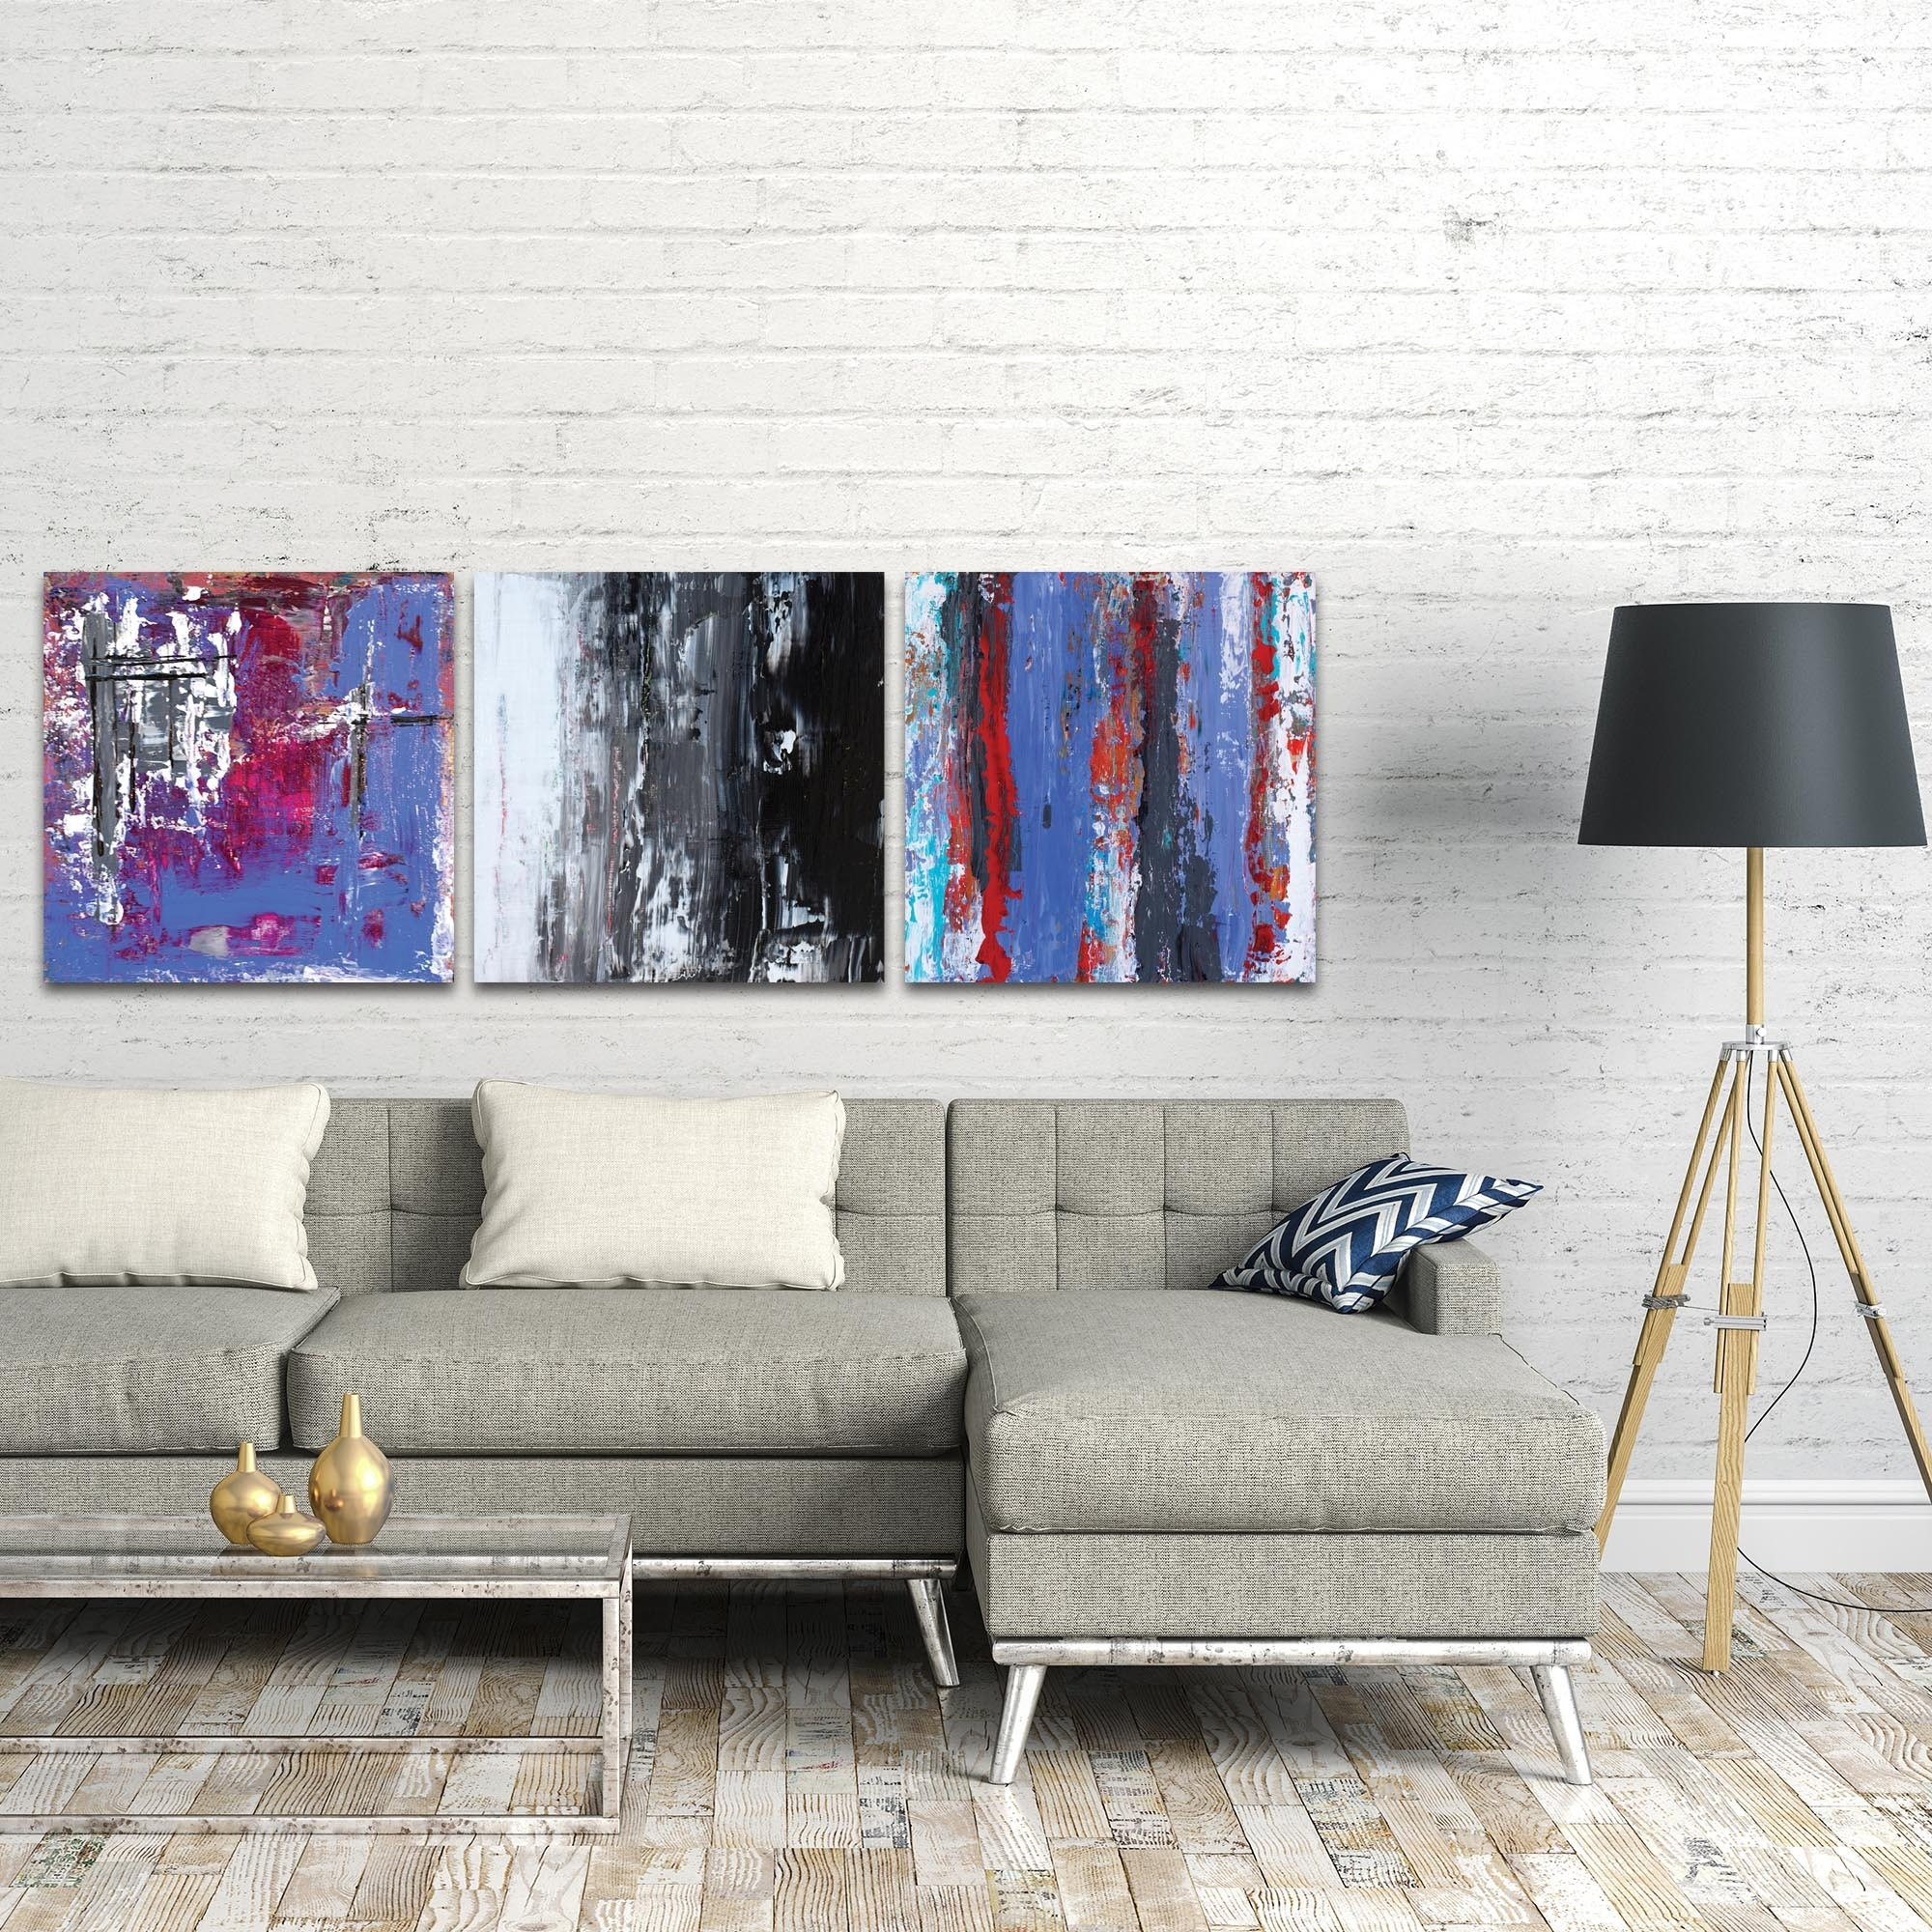 Popular Triptych Wall Art Regarding Metal Art Studio – Urban Triptych 4 Largeceleste Reiter (View 20 of 20)